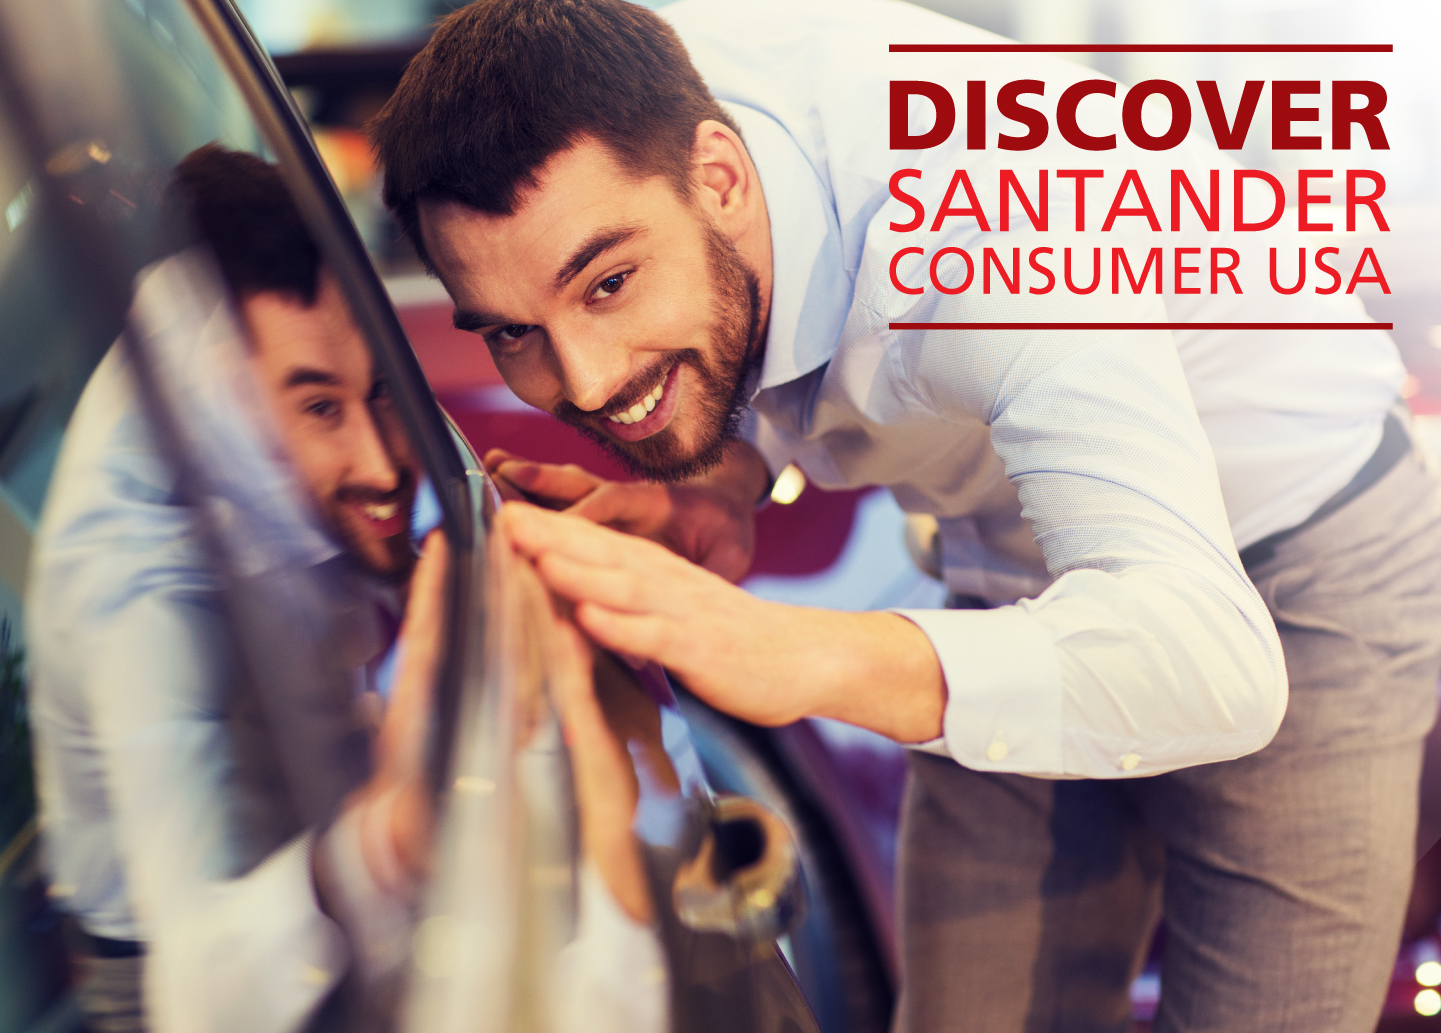 Financing Your Next Car, Truck Or SUV With Santander